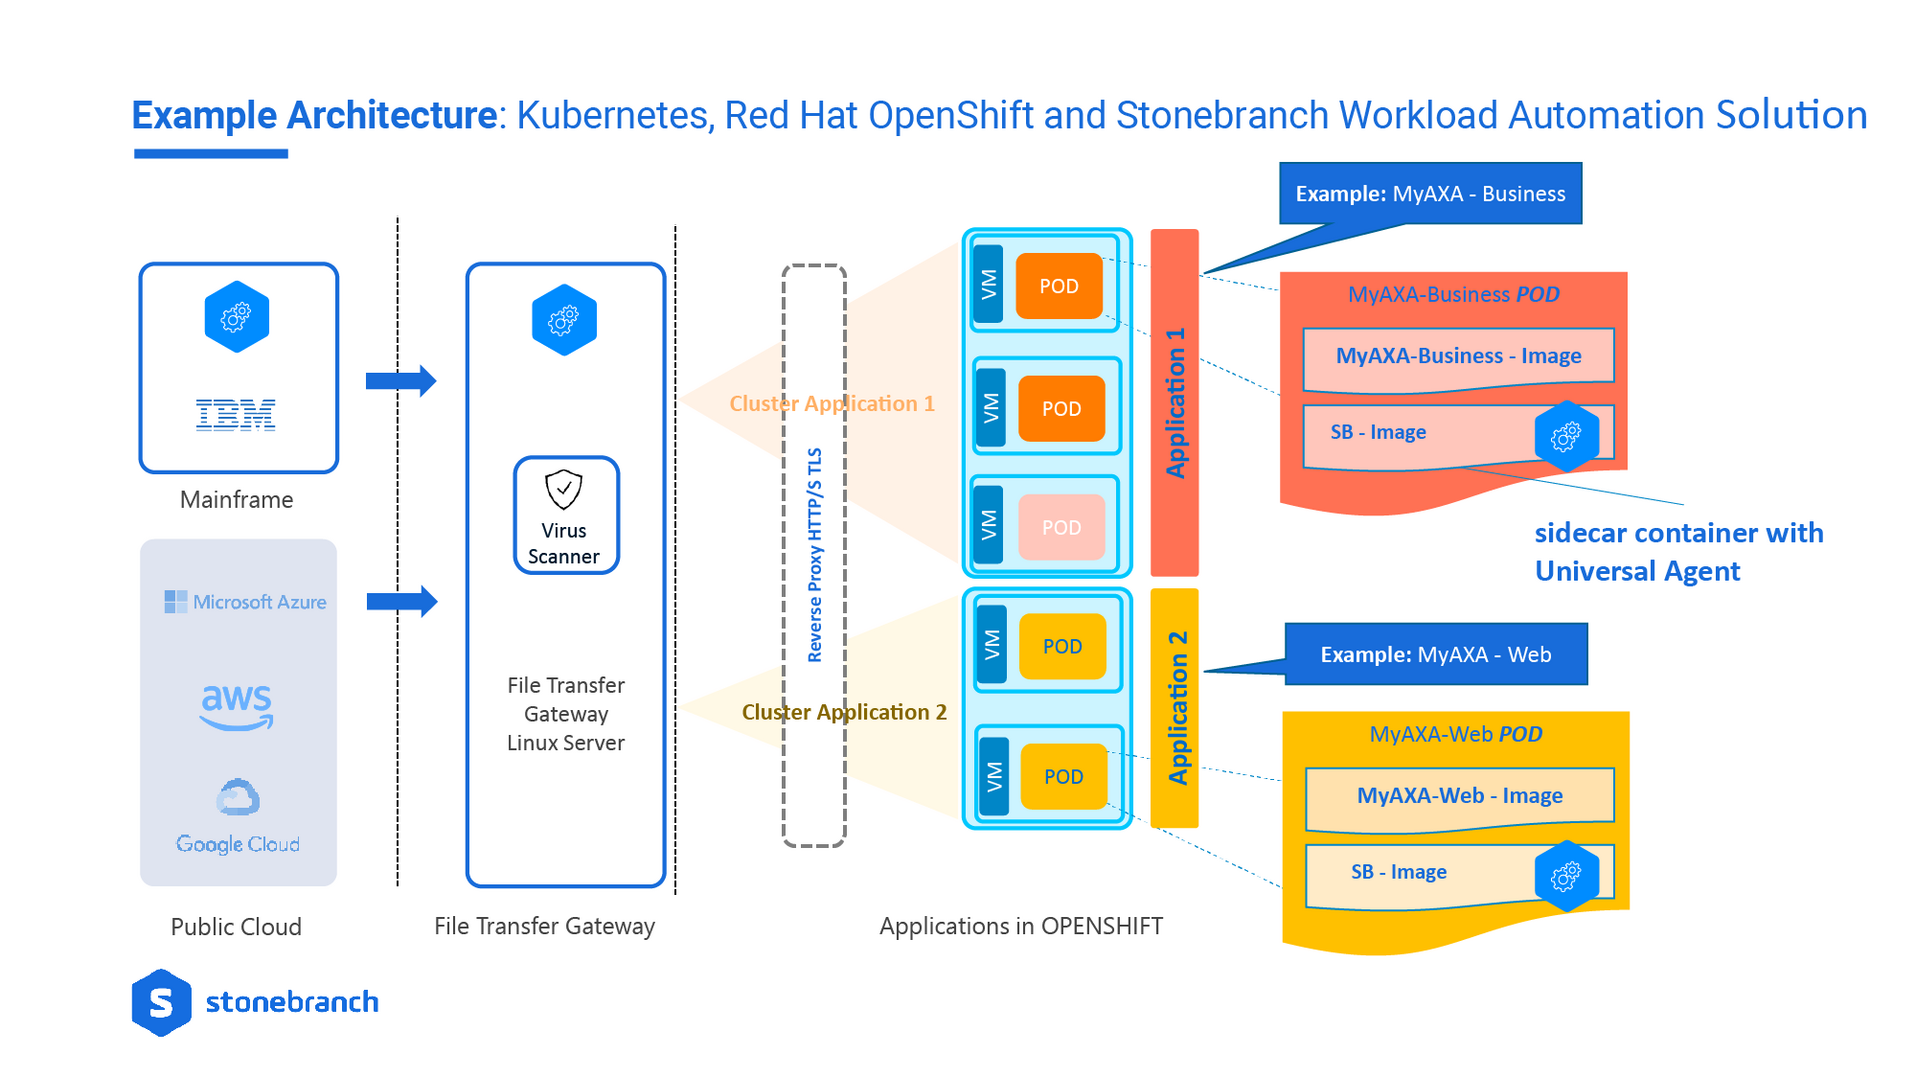 Red Hat OpenShift, Kubernetes and Stonebranch Diagram